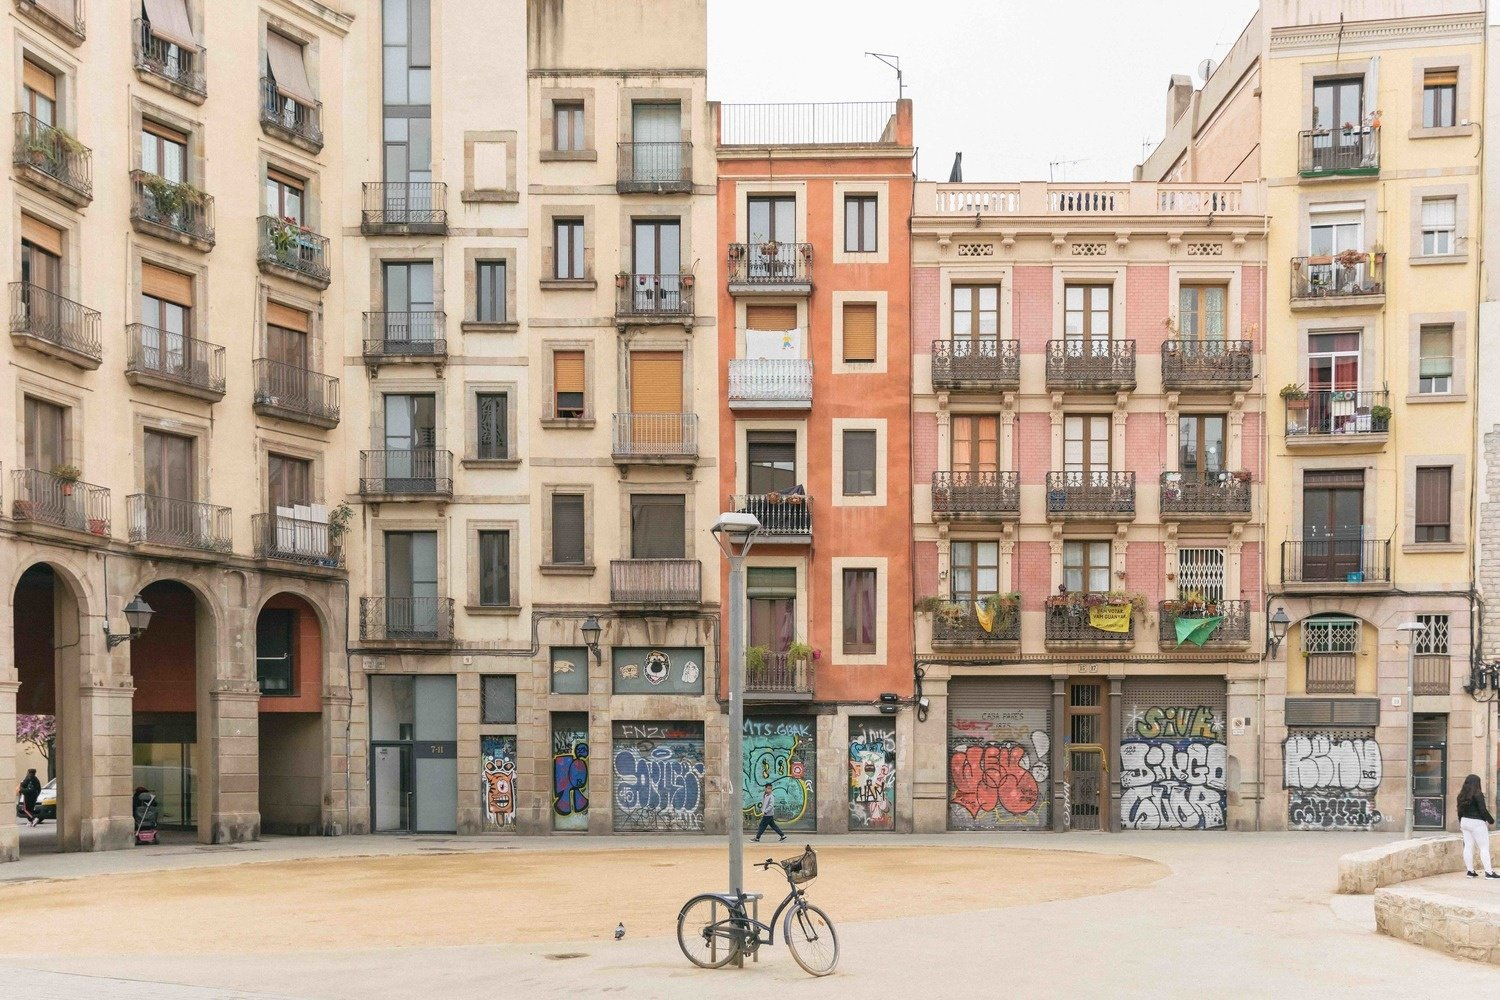 Real Estate in Barcelona: The Lowdown